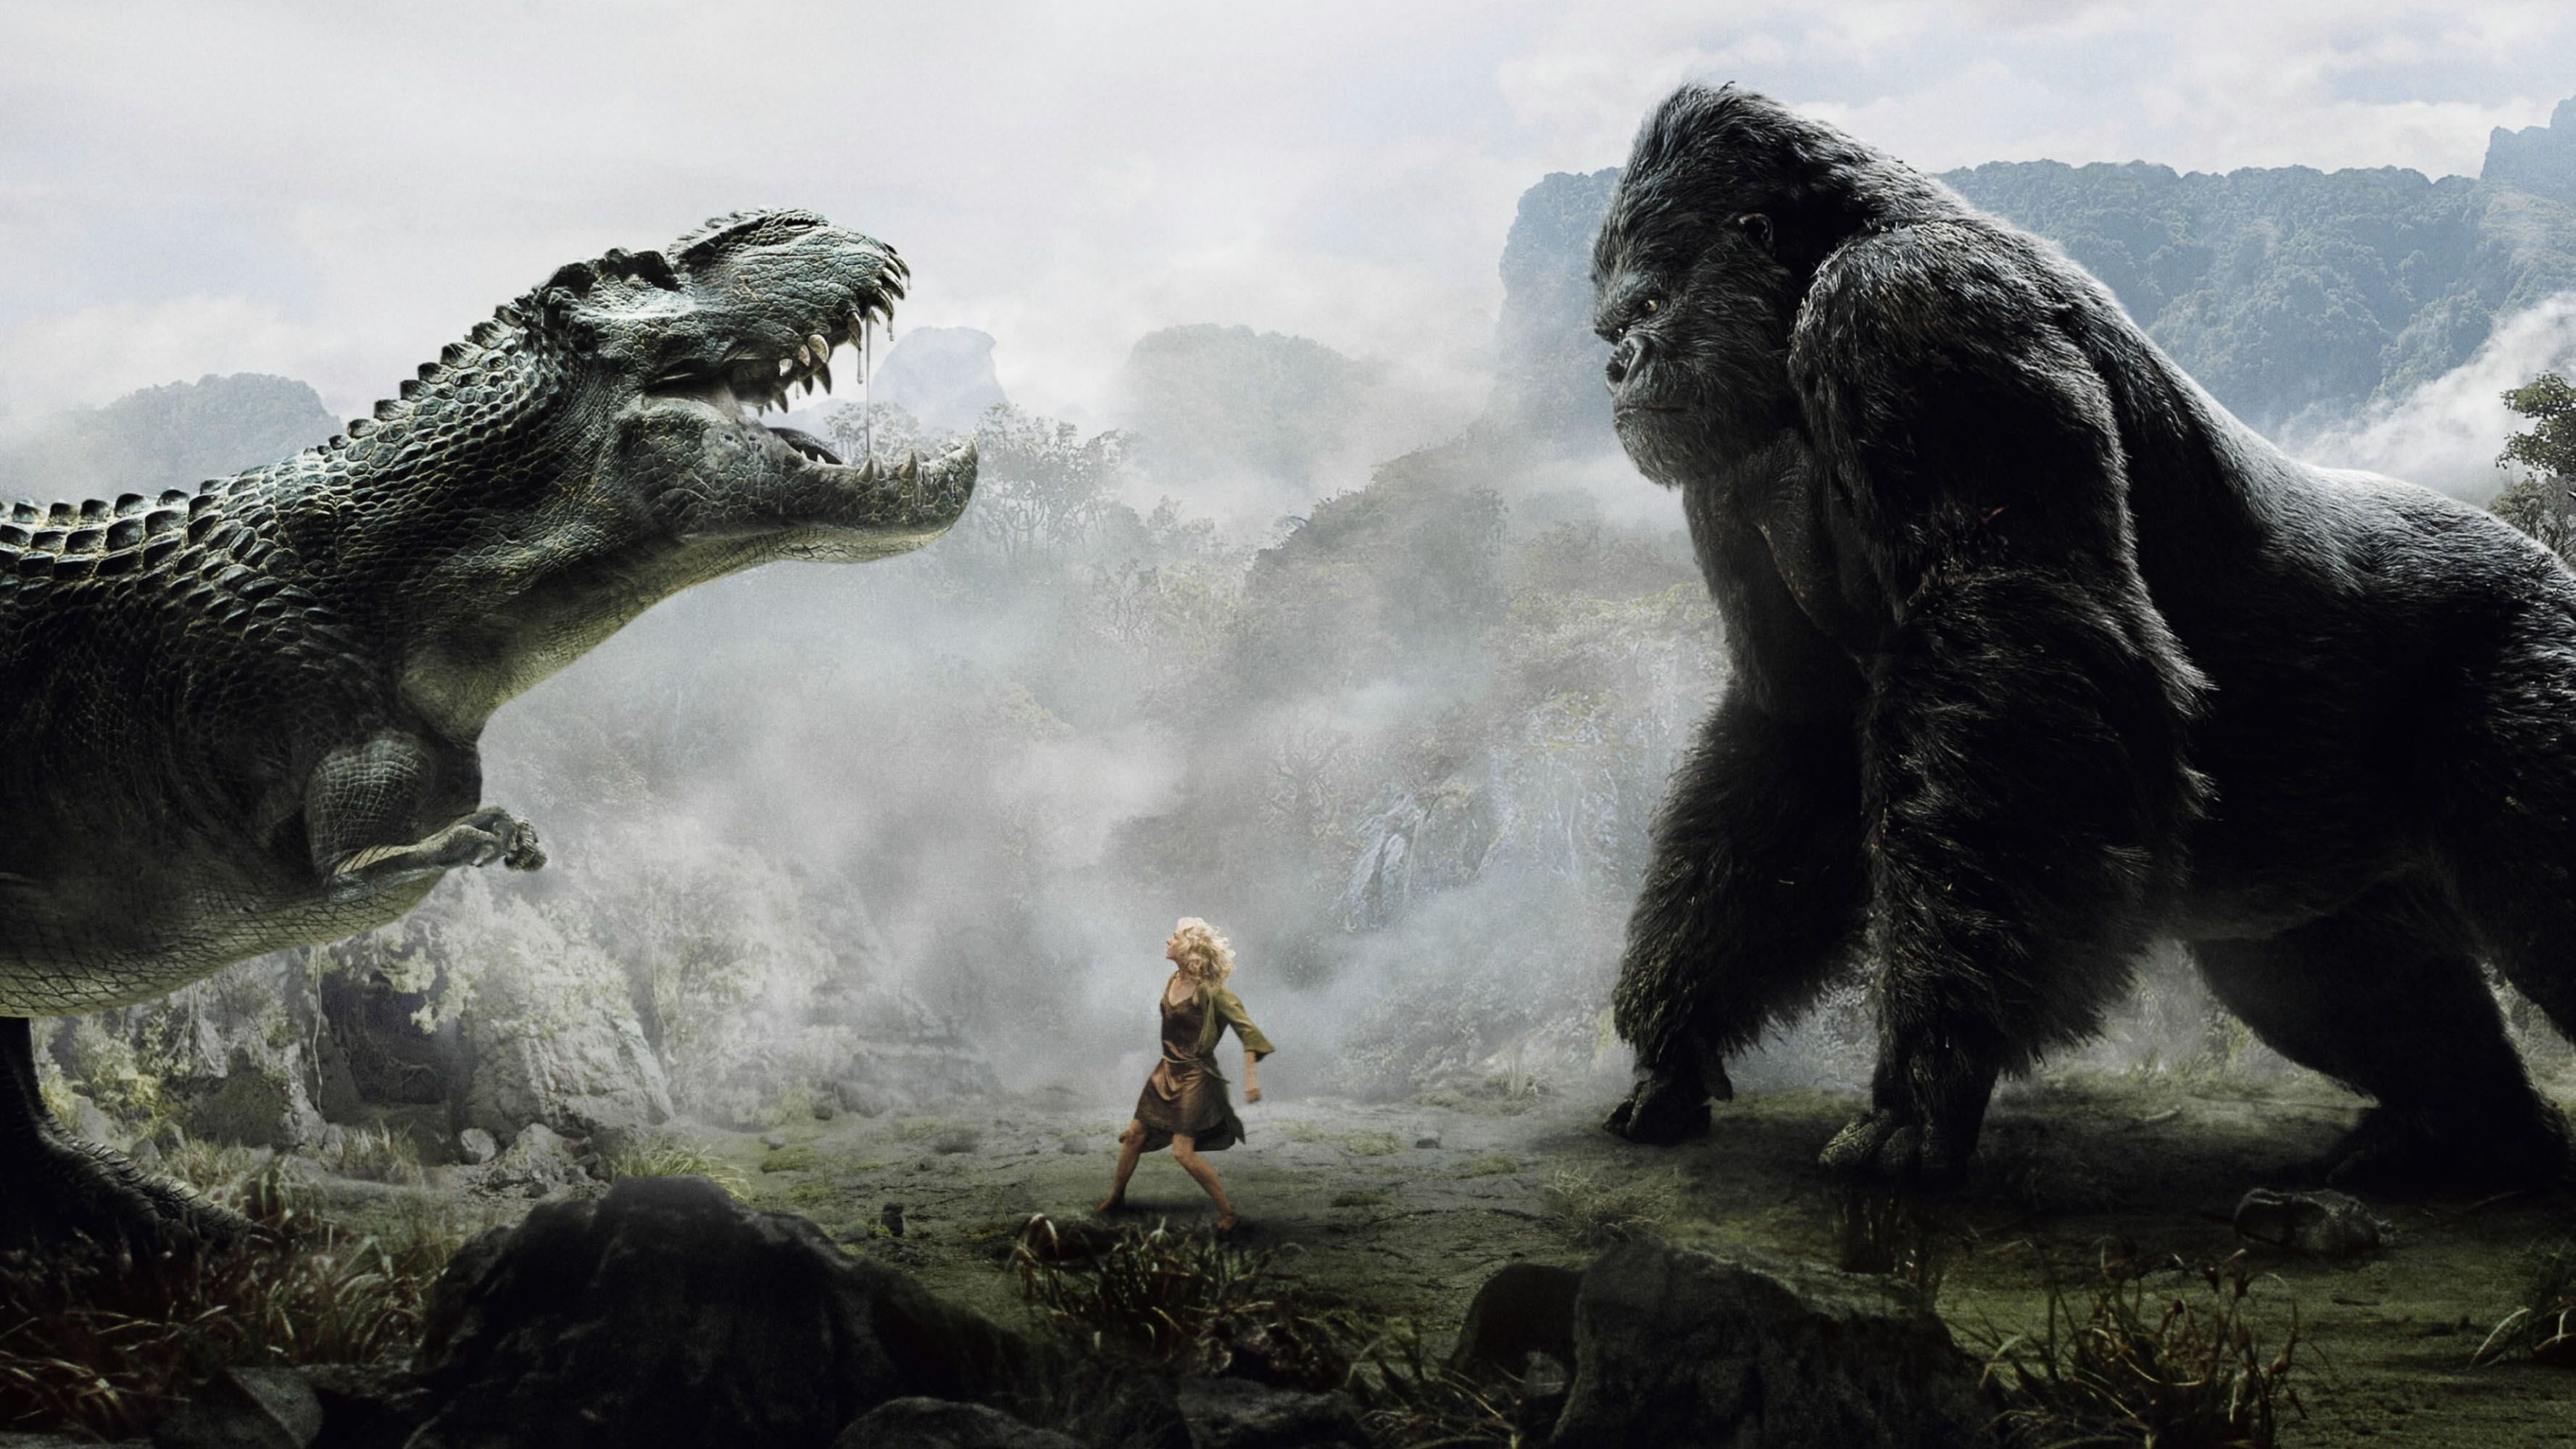 Download King Kong Vs Godzilla wallpaper